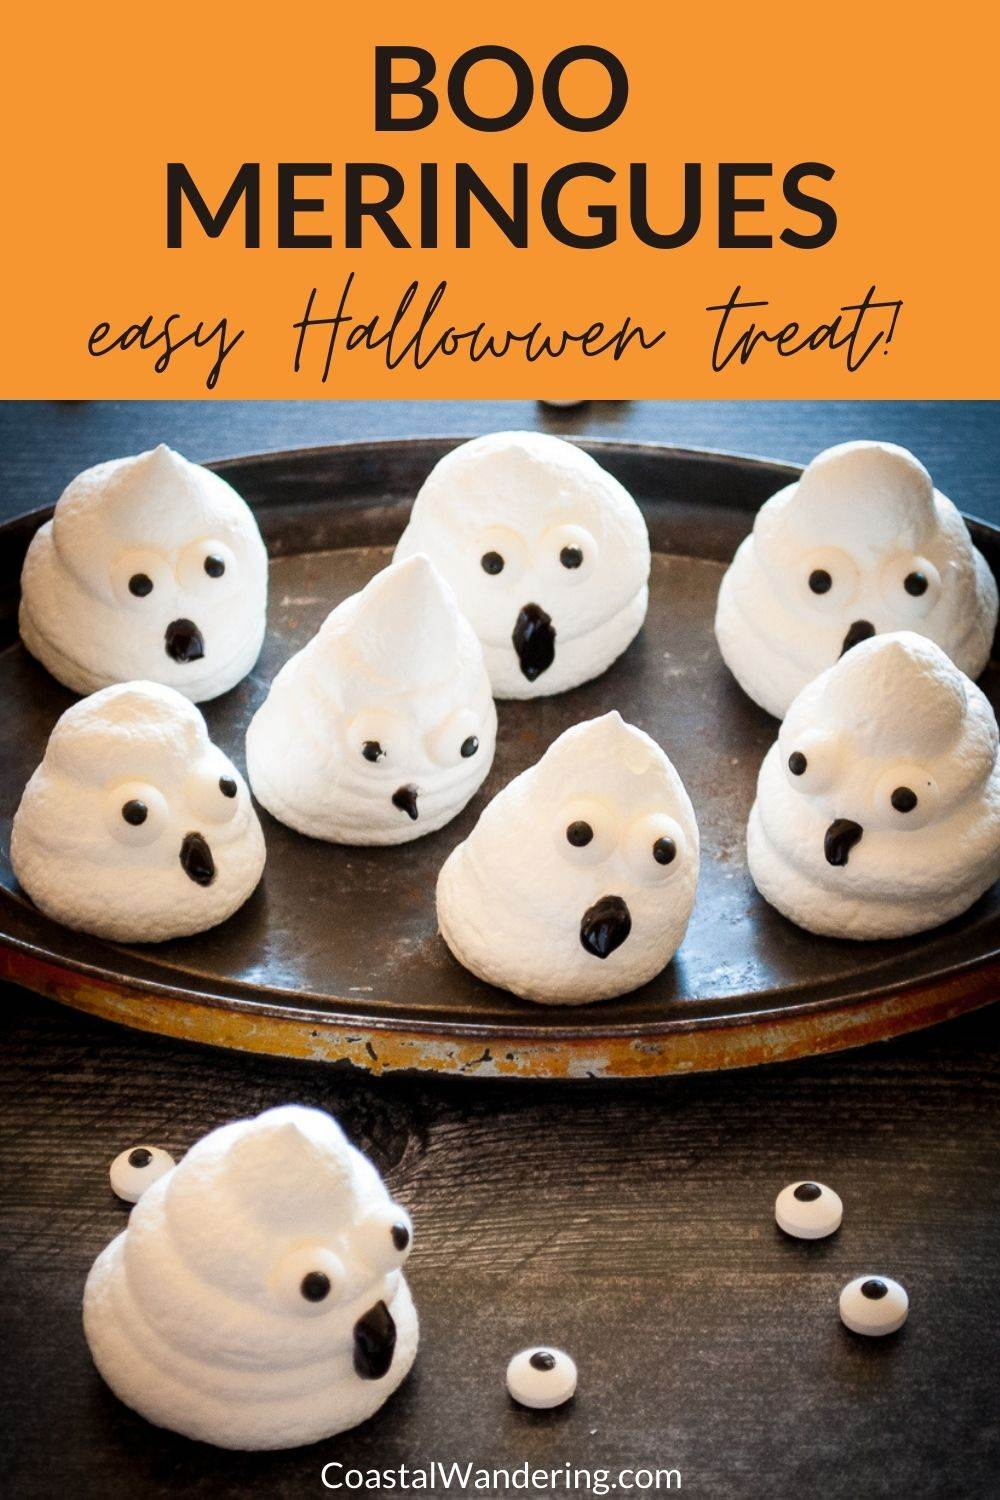 How To Make Boo Meringues For Halloween